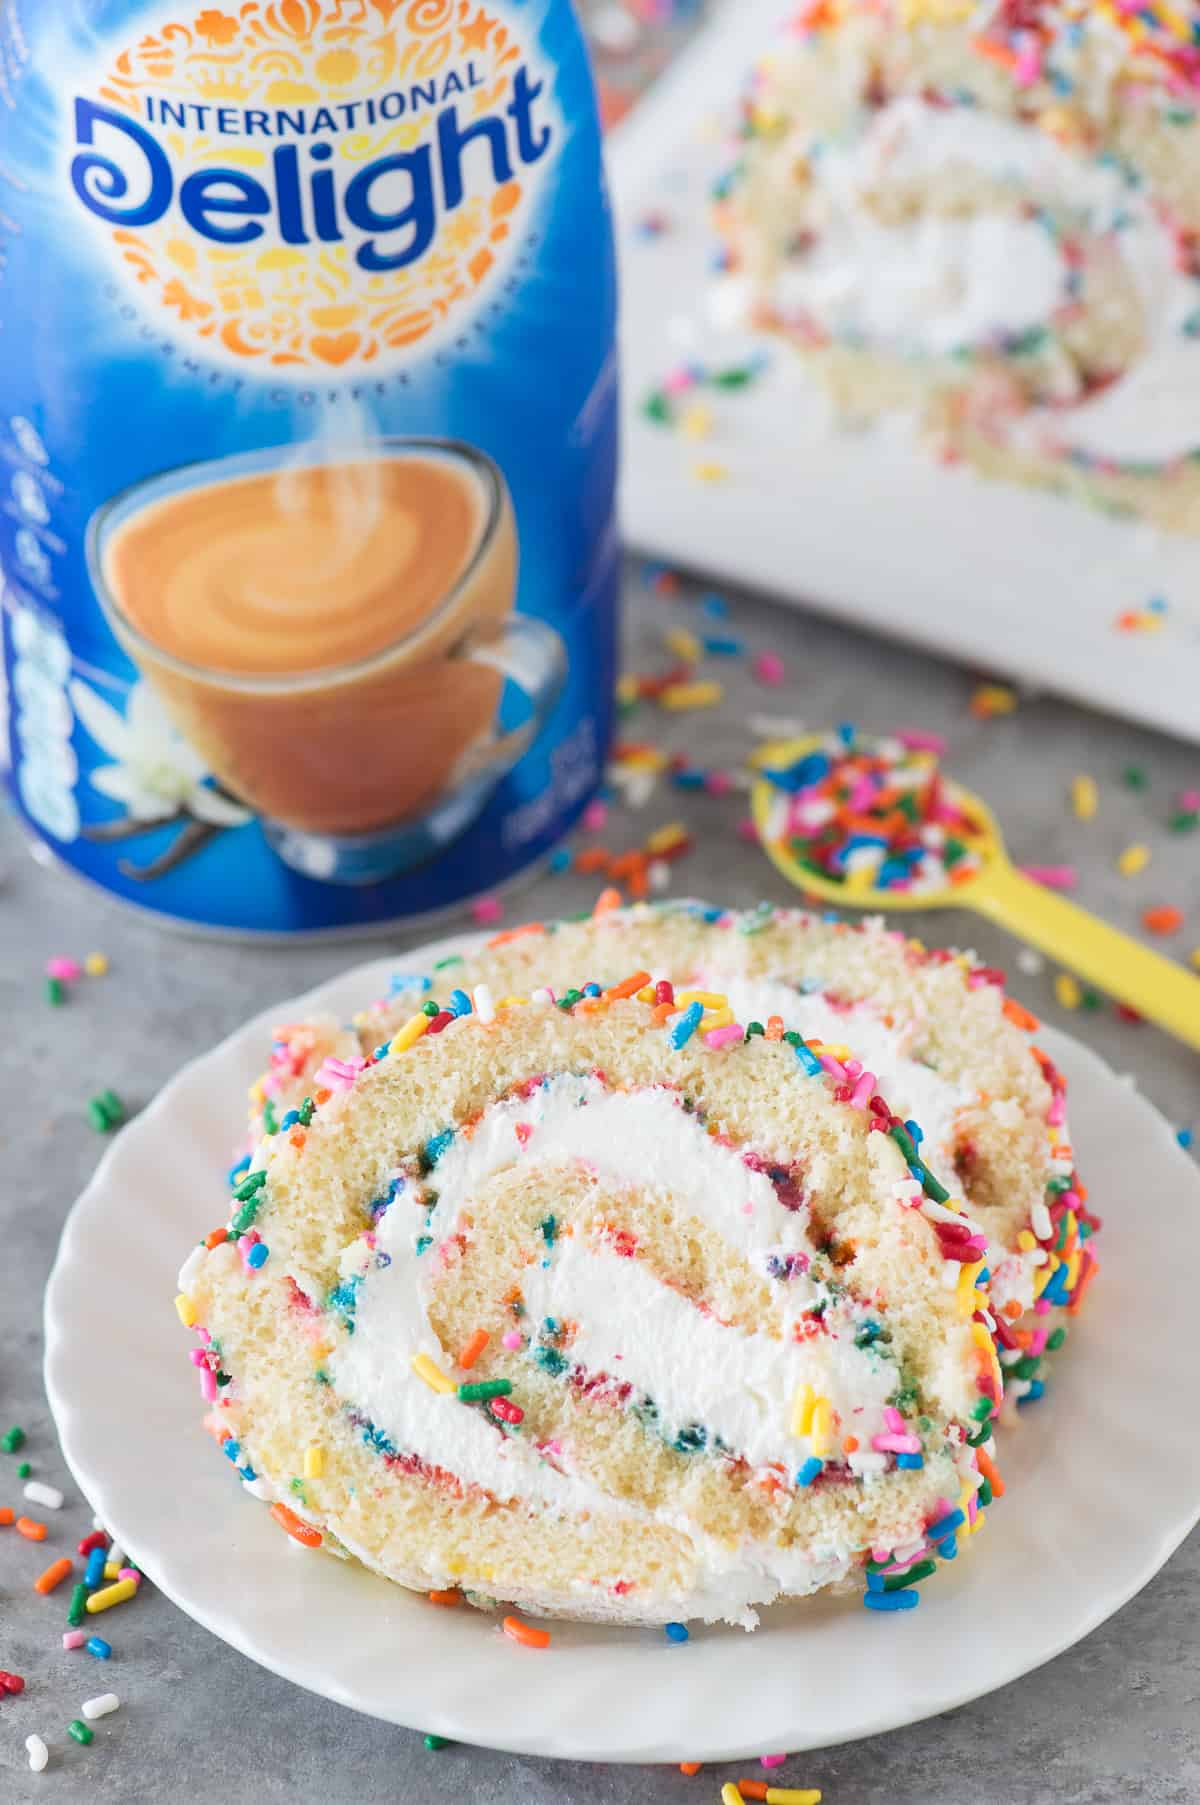 The ULTIMATE funfetti cake roll! A vanilla cake paired with a cream cheese frosting. Add as many sprinkles as you like! #Idelight